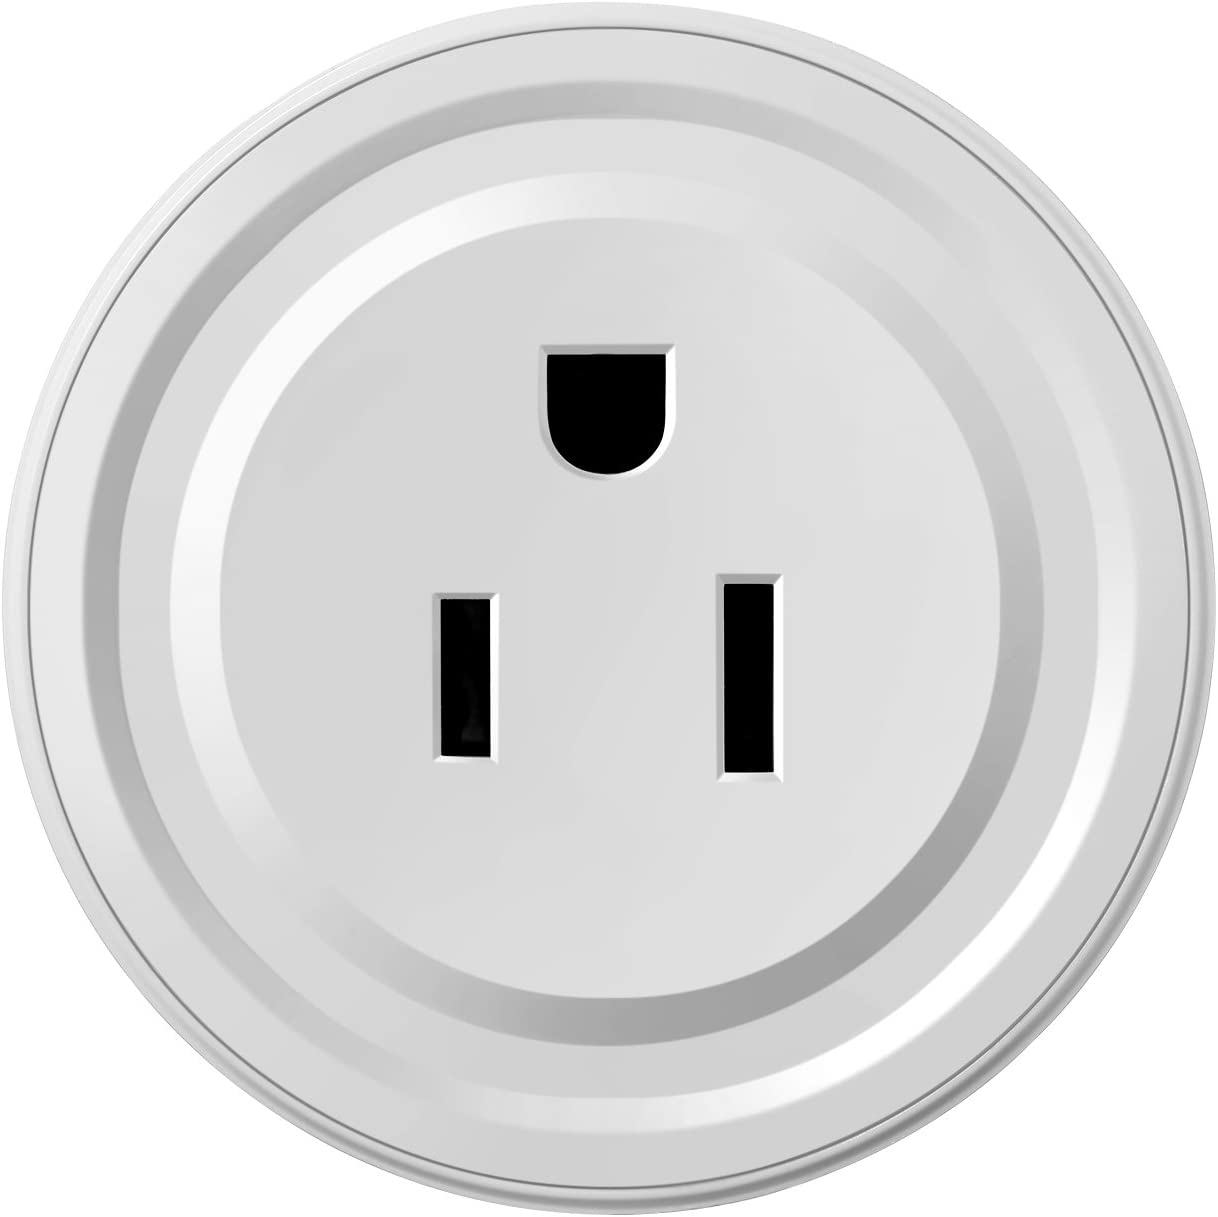 Smart Plug Wi-Fi Mini Socket Outlet Compatible with Alexa Wireless Control Your Devices from Anywhere, ETL Certificated Timing Function For Smart Phone Voice Control for Home Appliances White